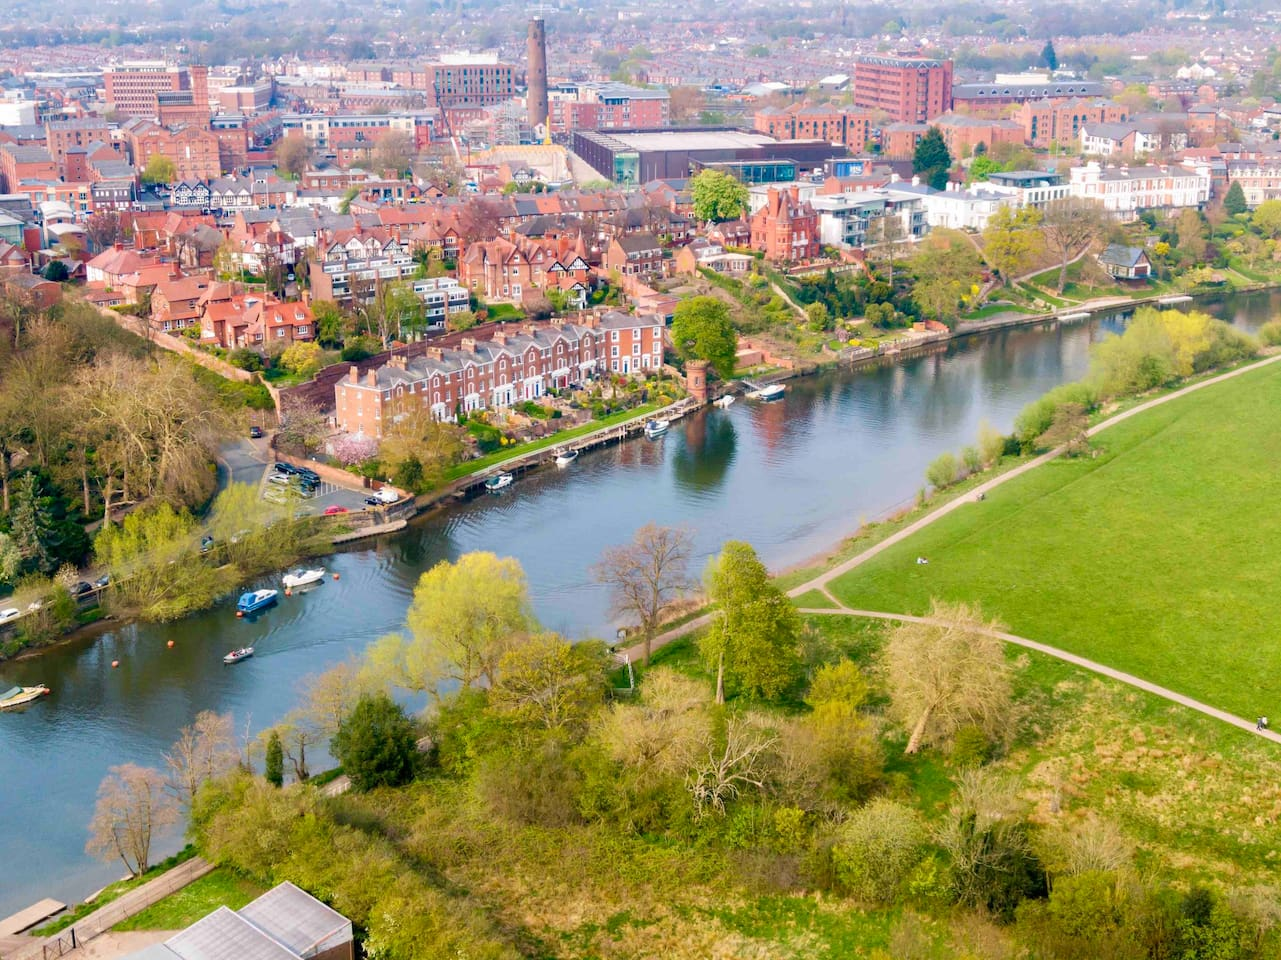 Chester - aerial photo by me